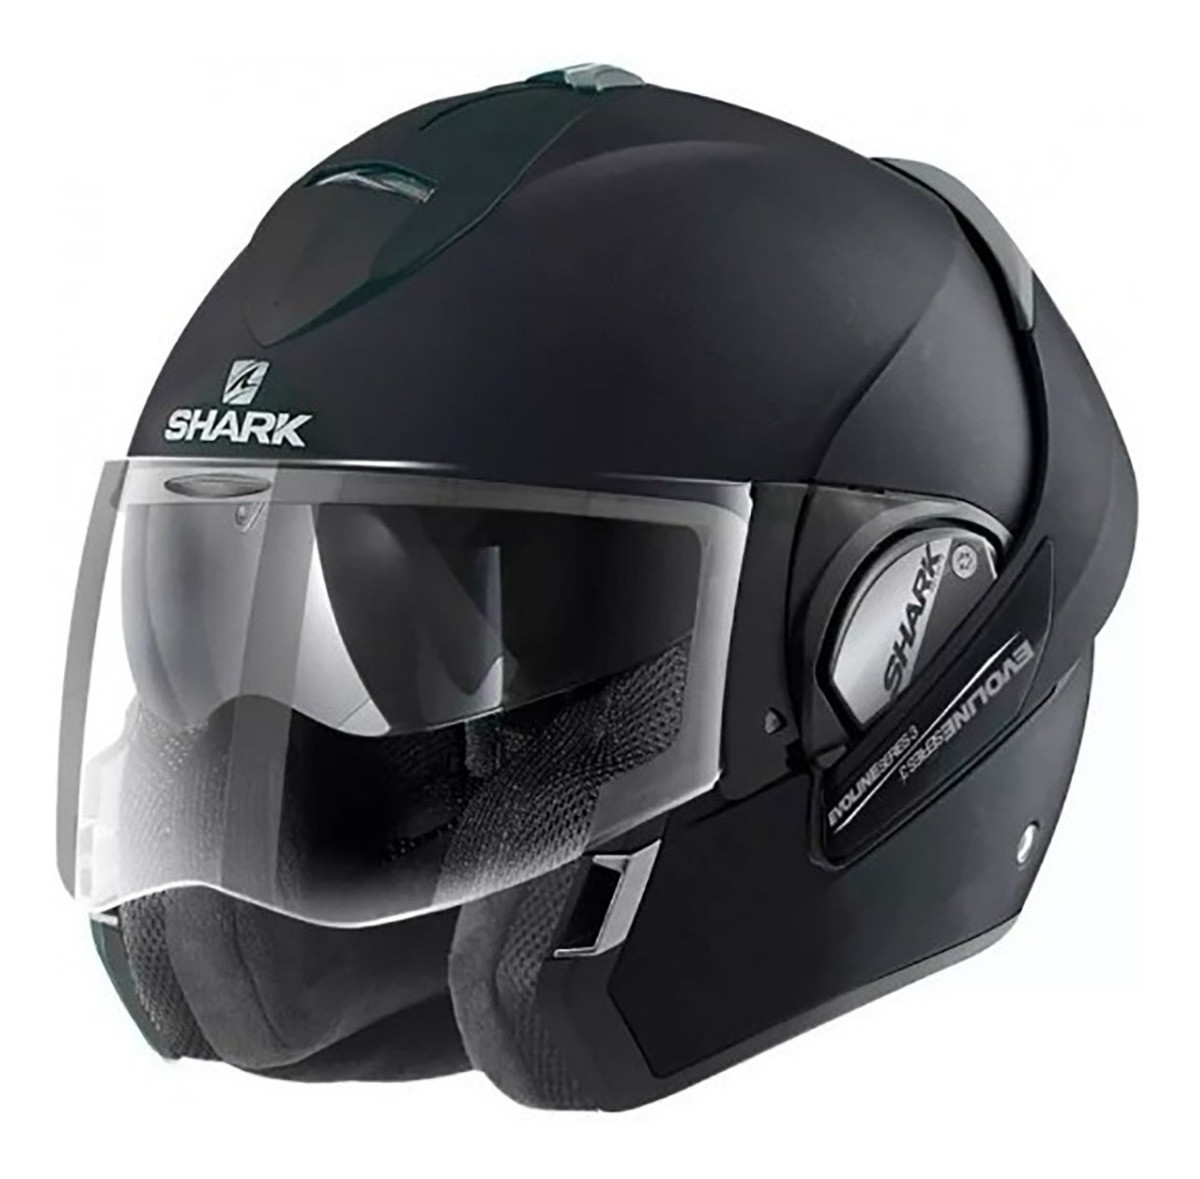 Casco Rebatible Shark Evoline 3 Negro Mate